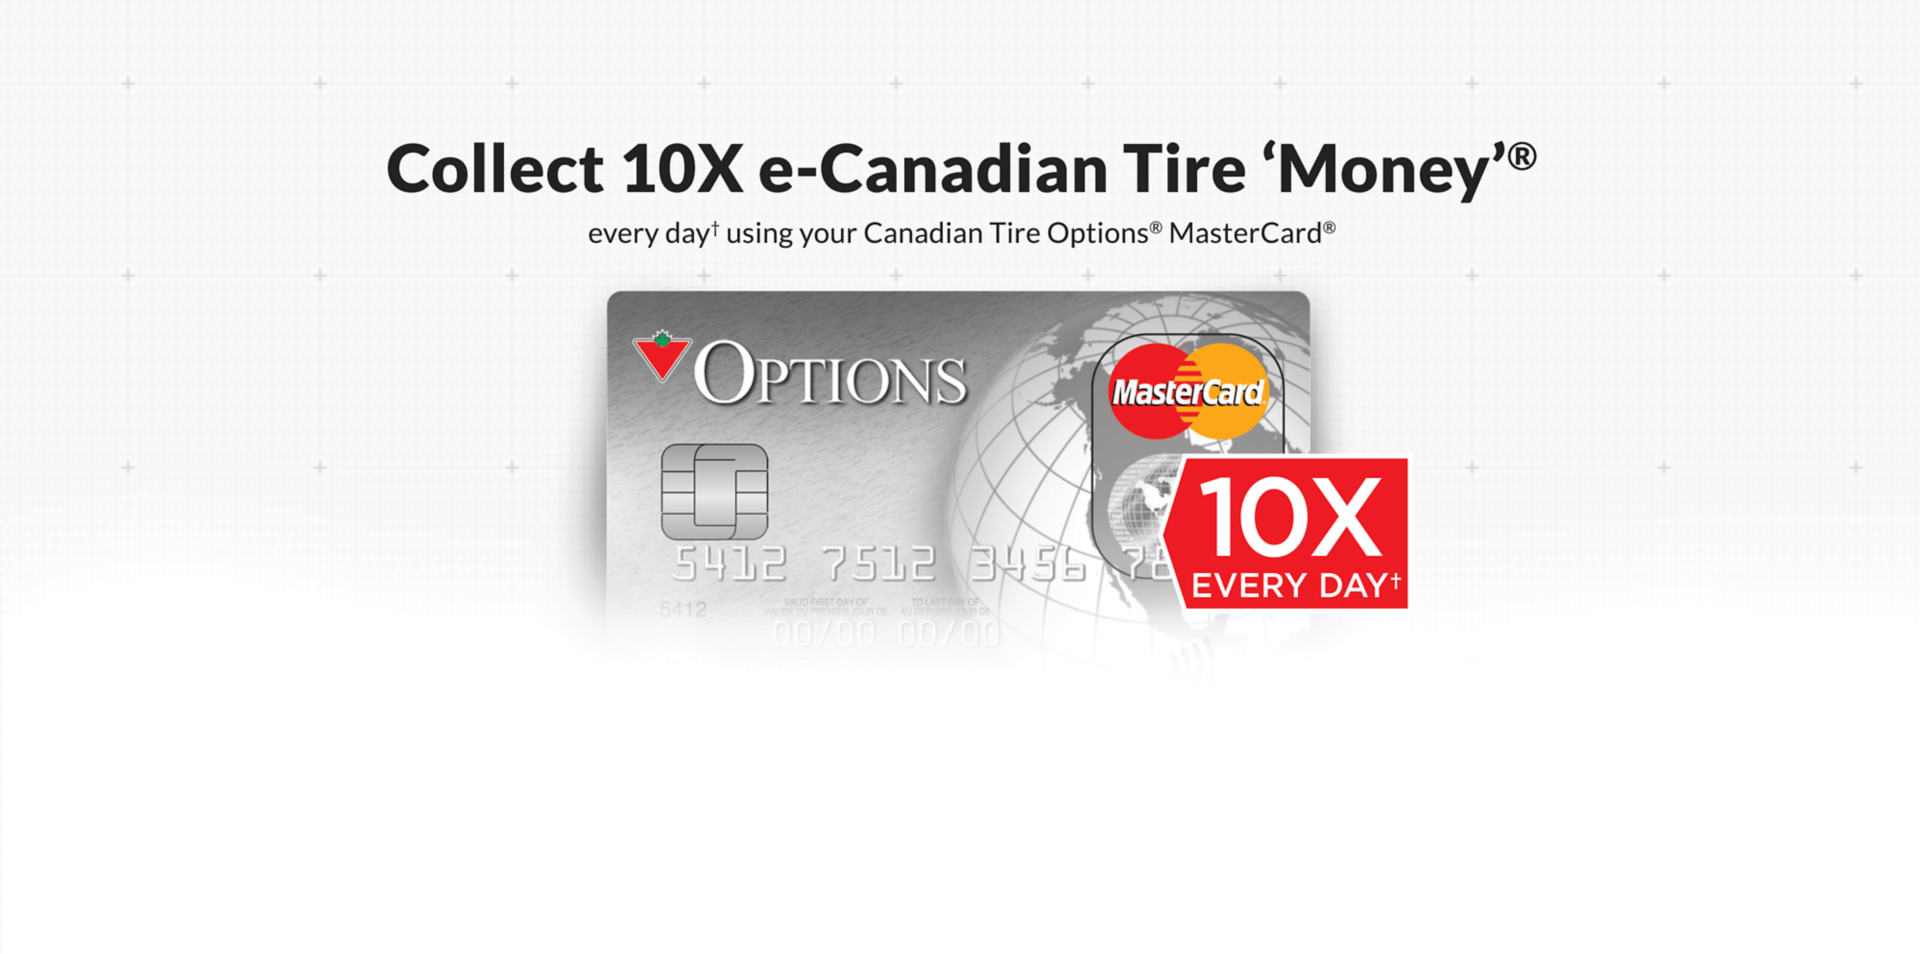 Collect 10X e-Canadian Tire 'Money' Every day using your Options MasterCard